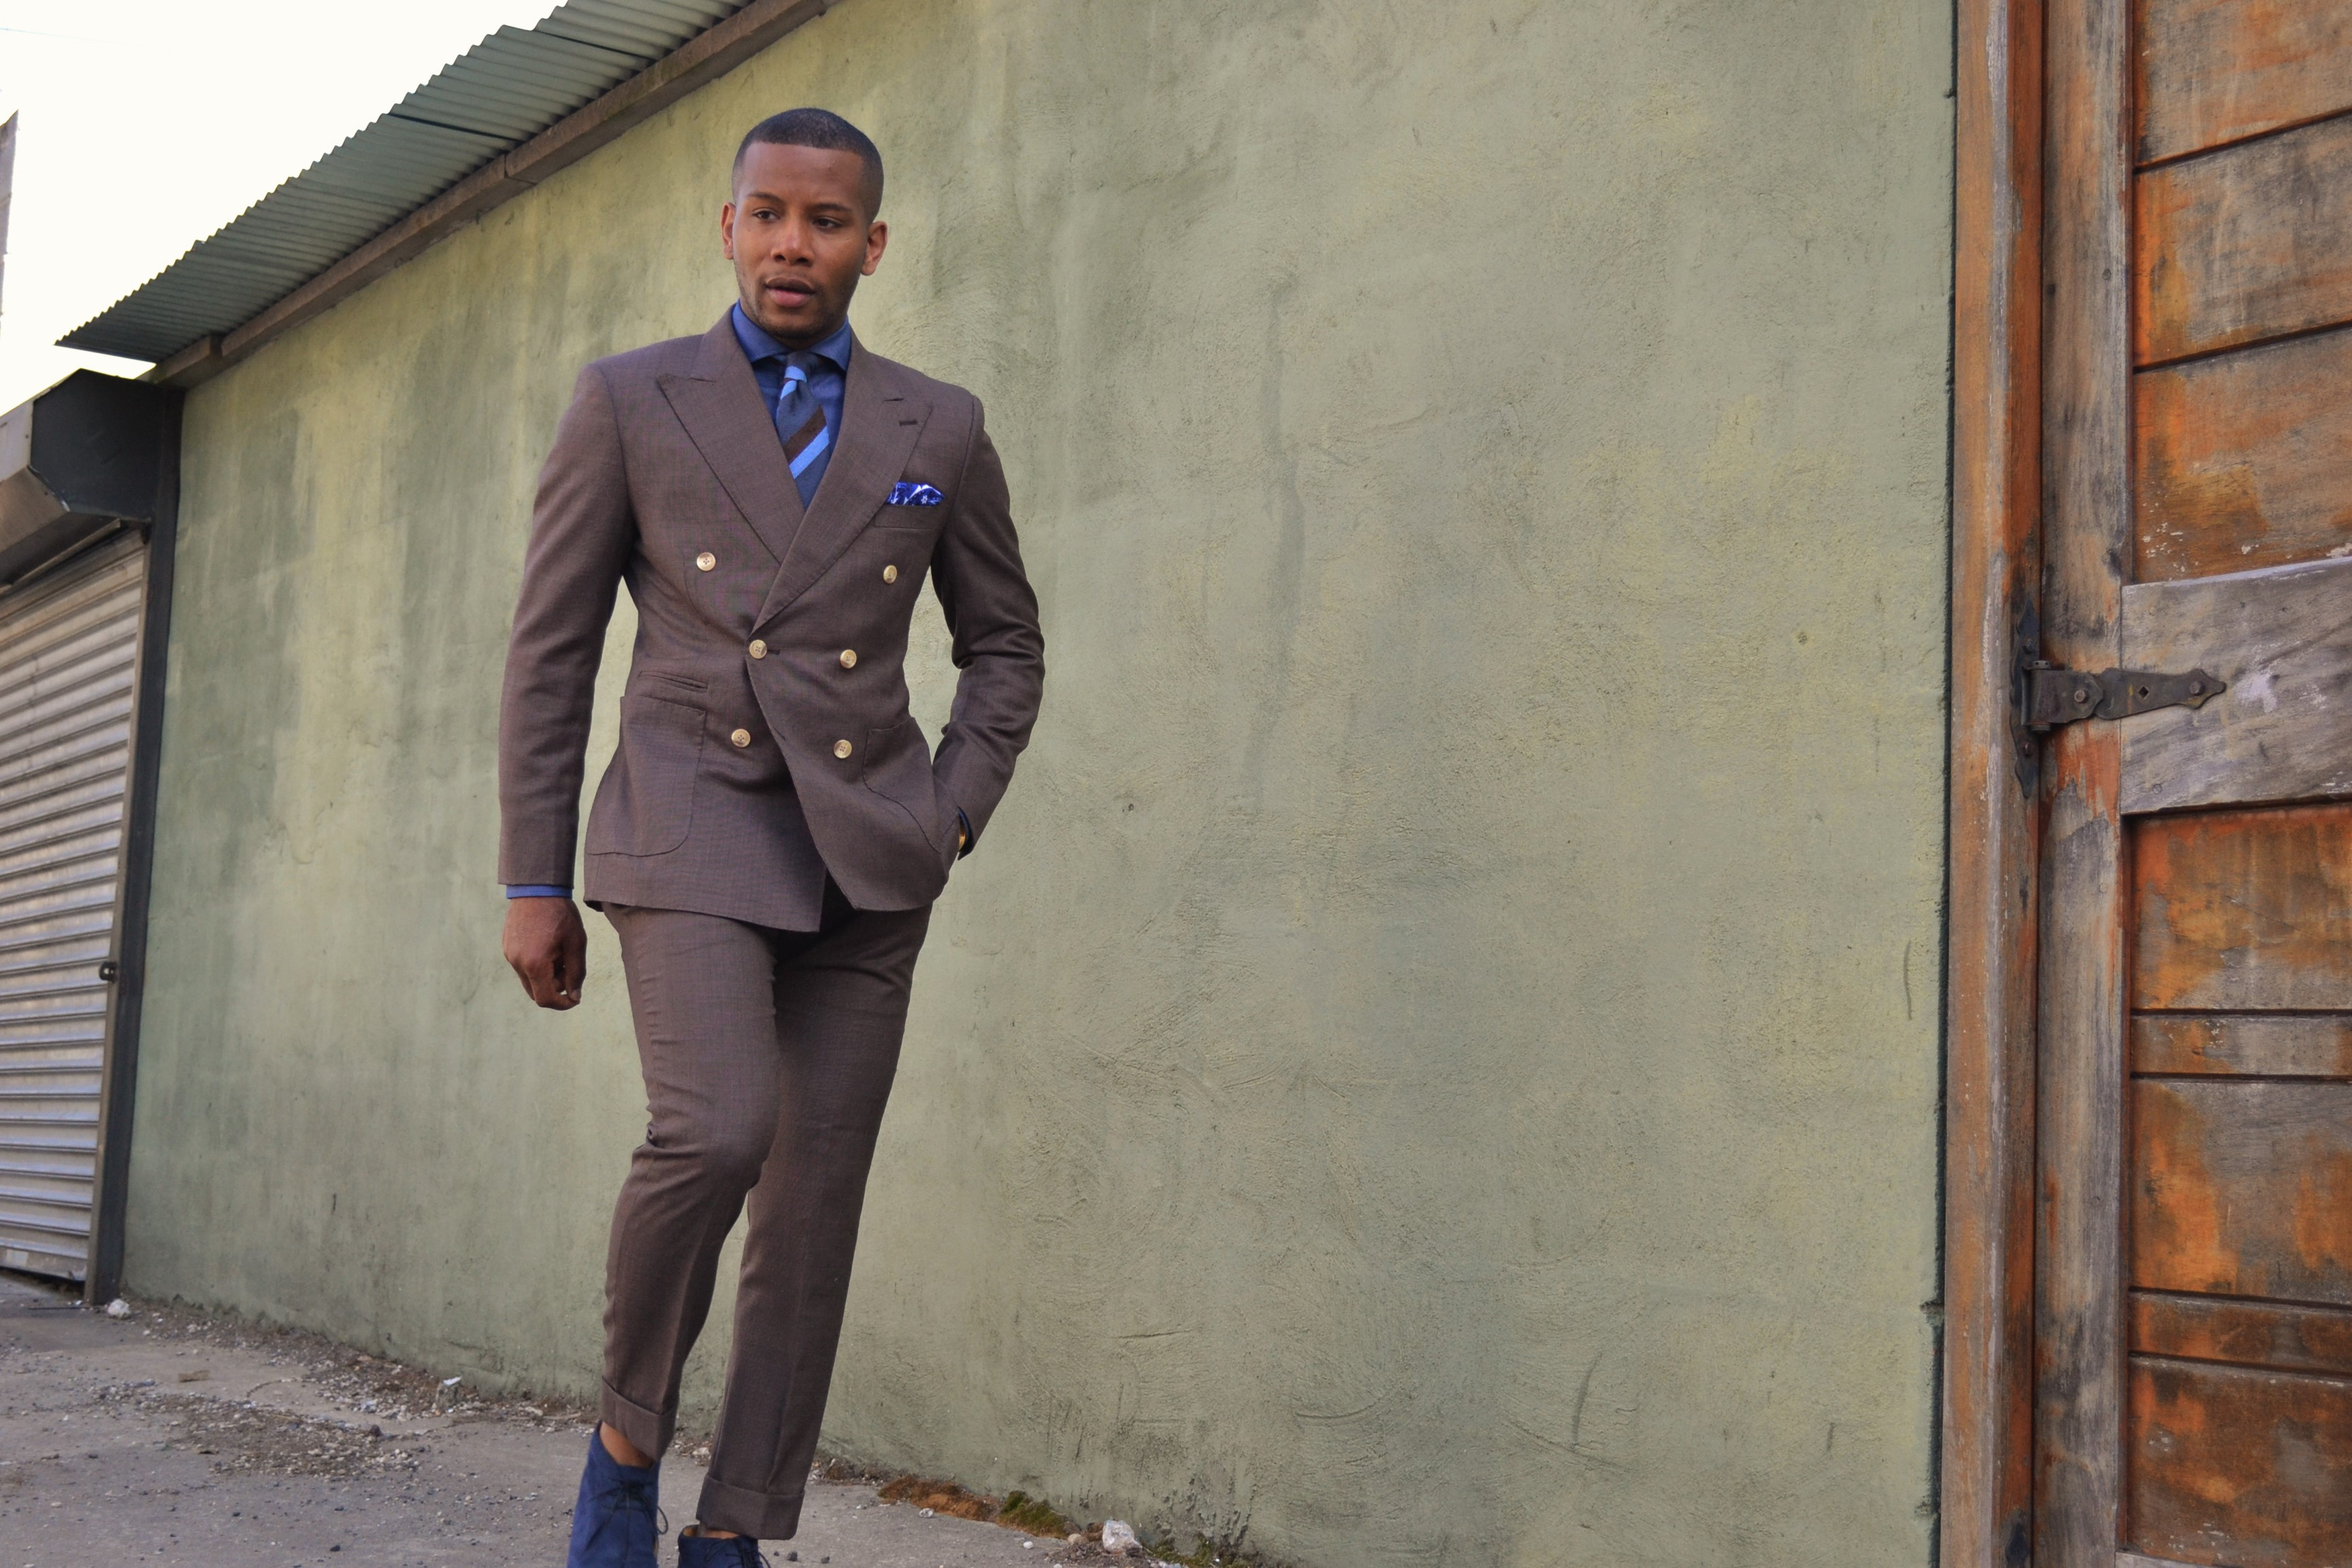 Imparali Double Breasted Brown Suit on Men's Style Pro